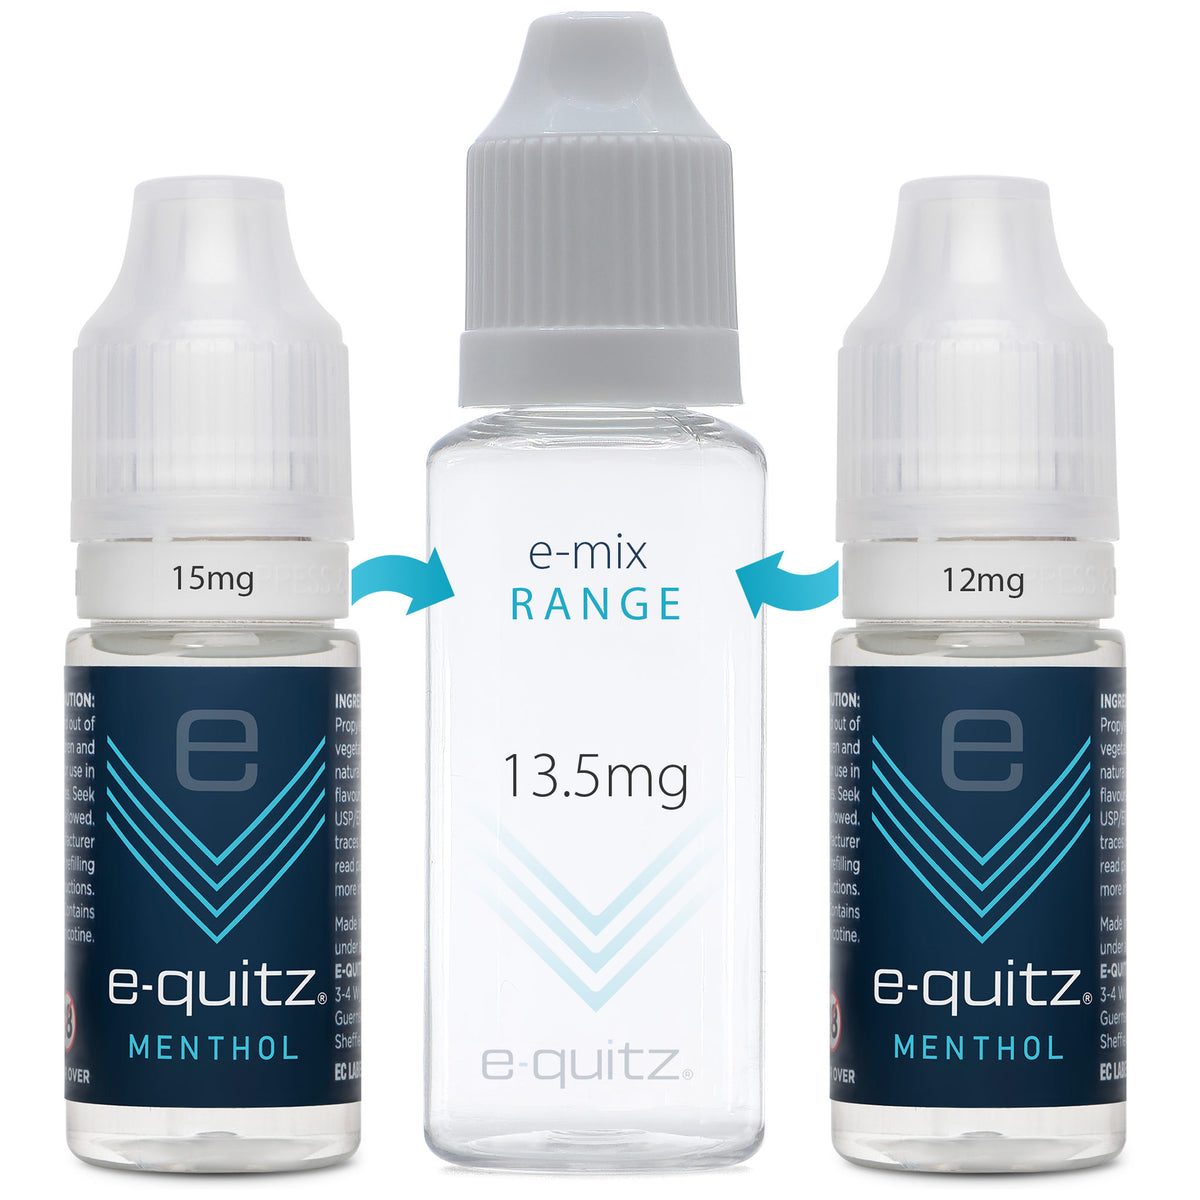 e-quitz 13.5mg menthol e-mix